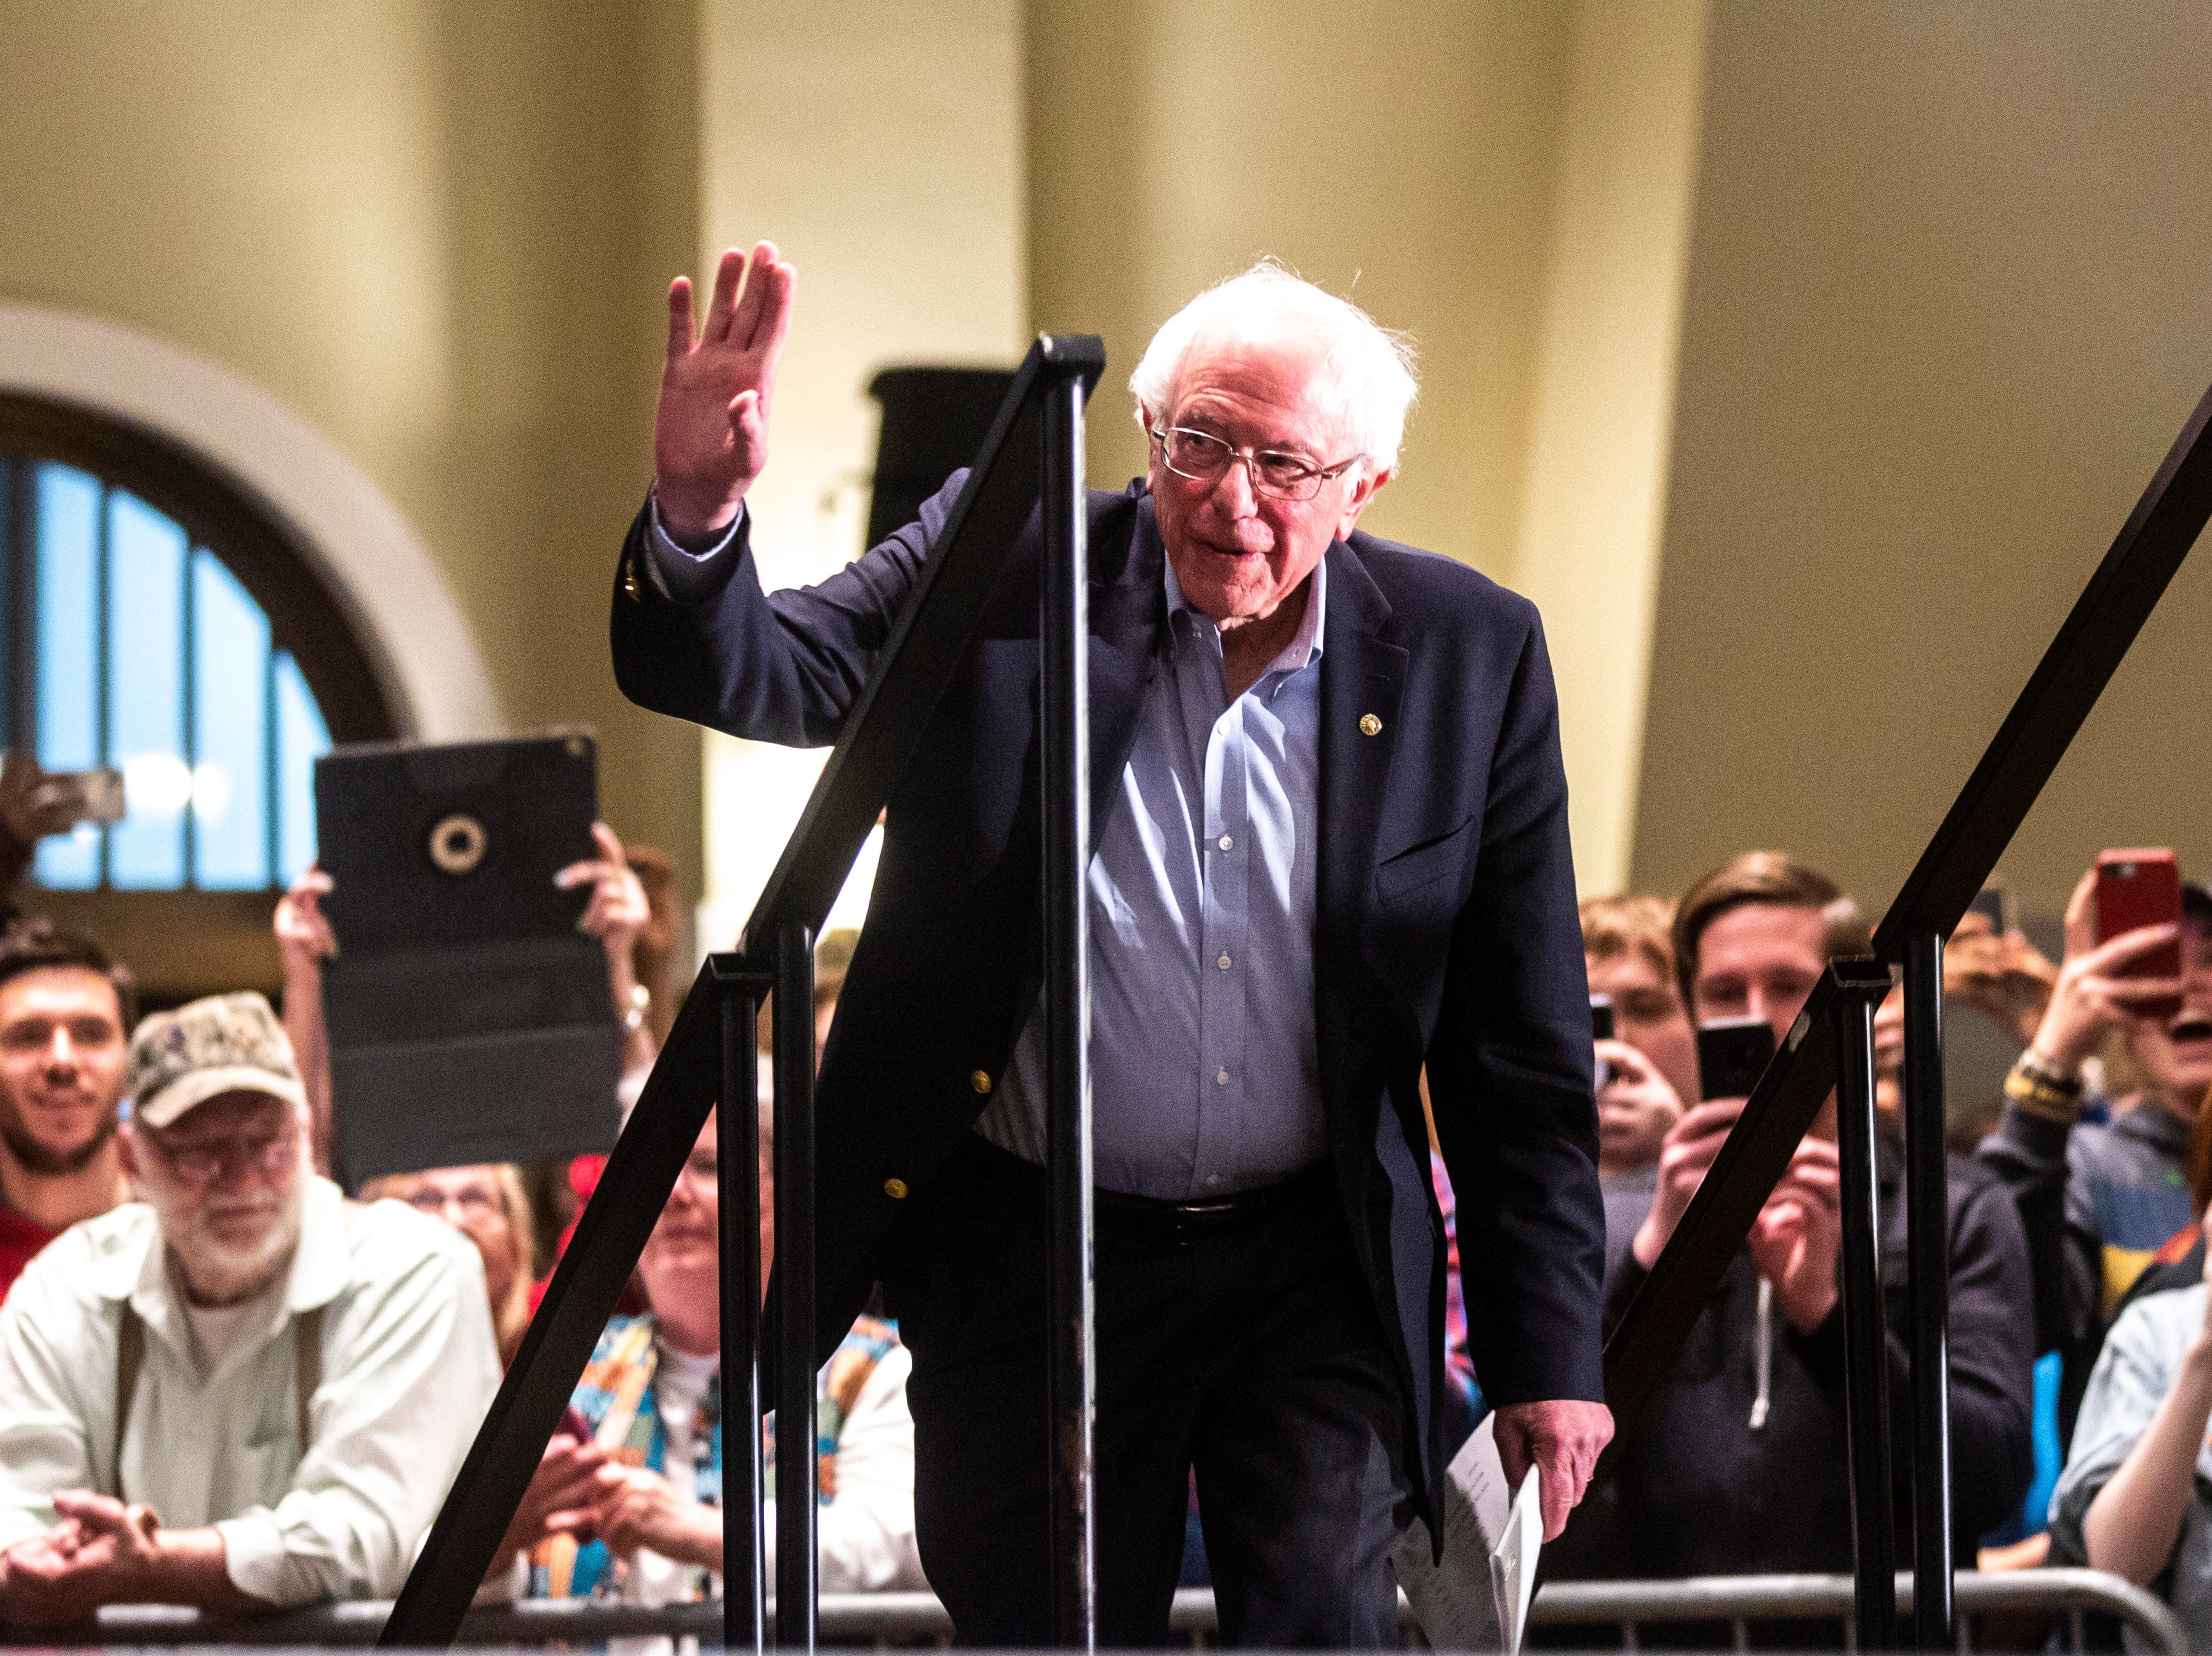 U.S. Sen. Bernie Sanders, I-VT, walks out to the stage at an event during his first trip to the state ahead of the caucus, Friday, March 8, 2019, at the Iowa Memorial Union on the University of Iowa campus in Iowa City, Iowa.